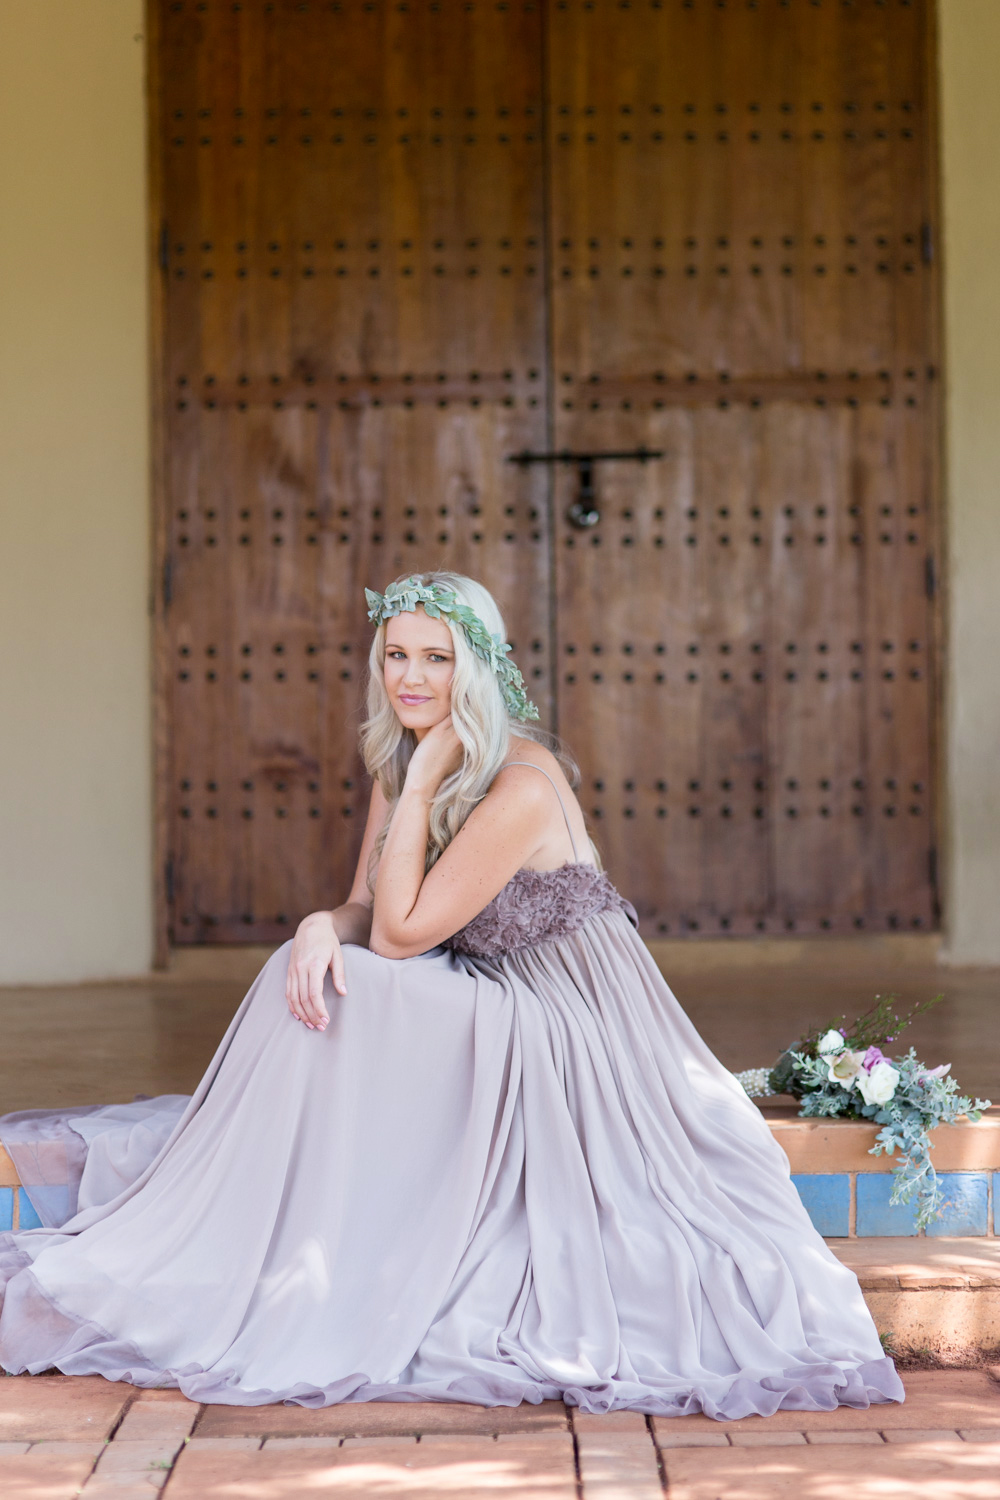 Shokran pretoria wedding venue shoot019.jpg